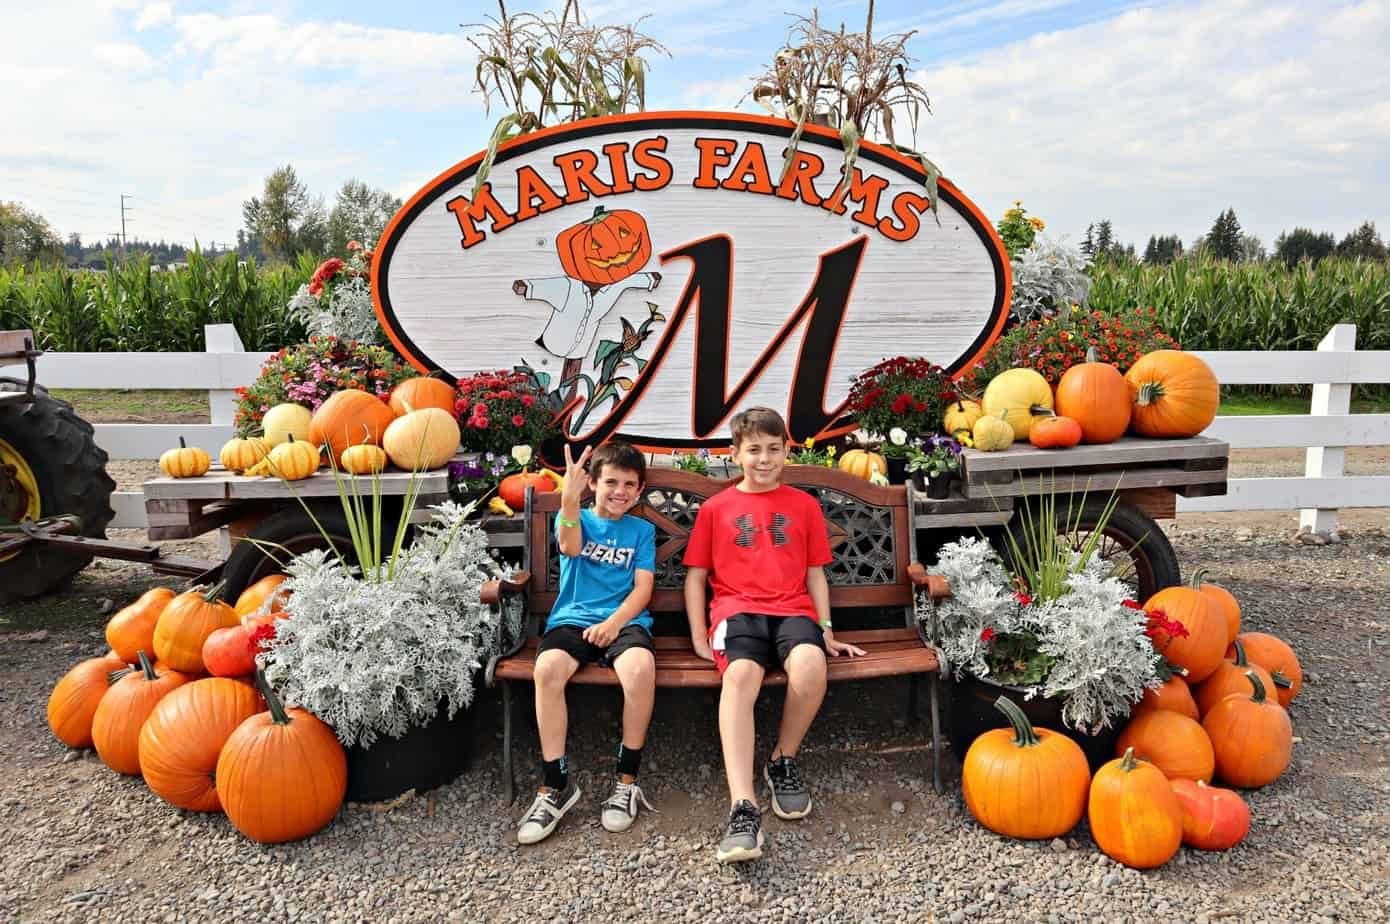 Fall Memories at Maris Farms Review in Pictures